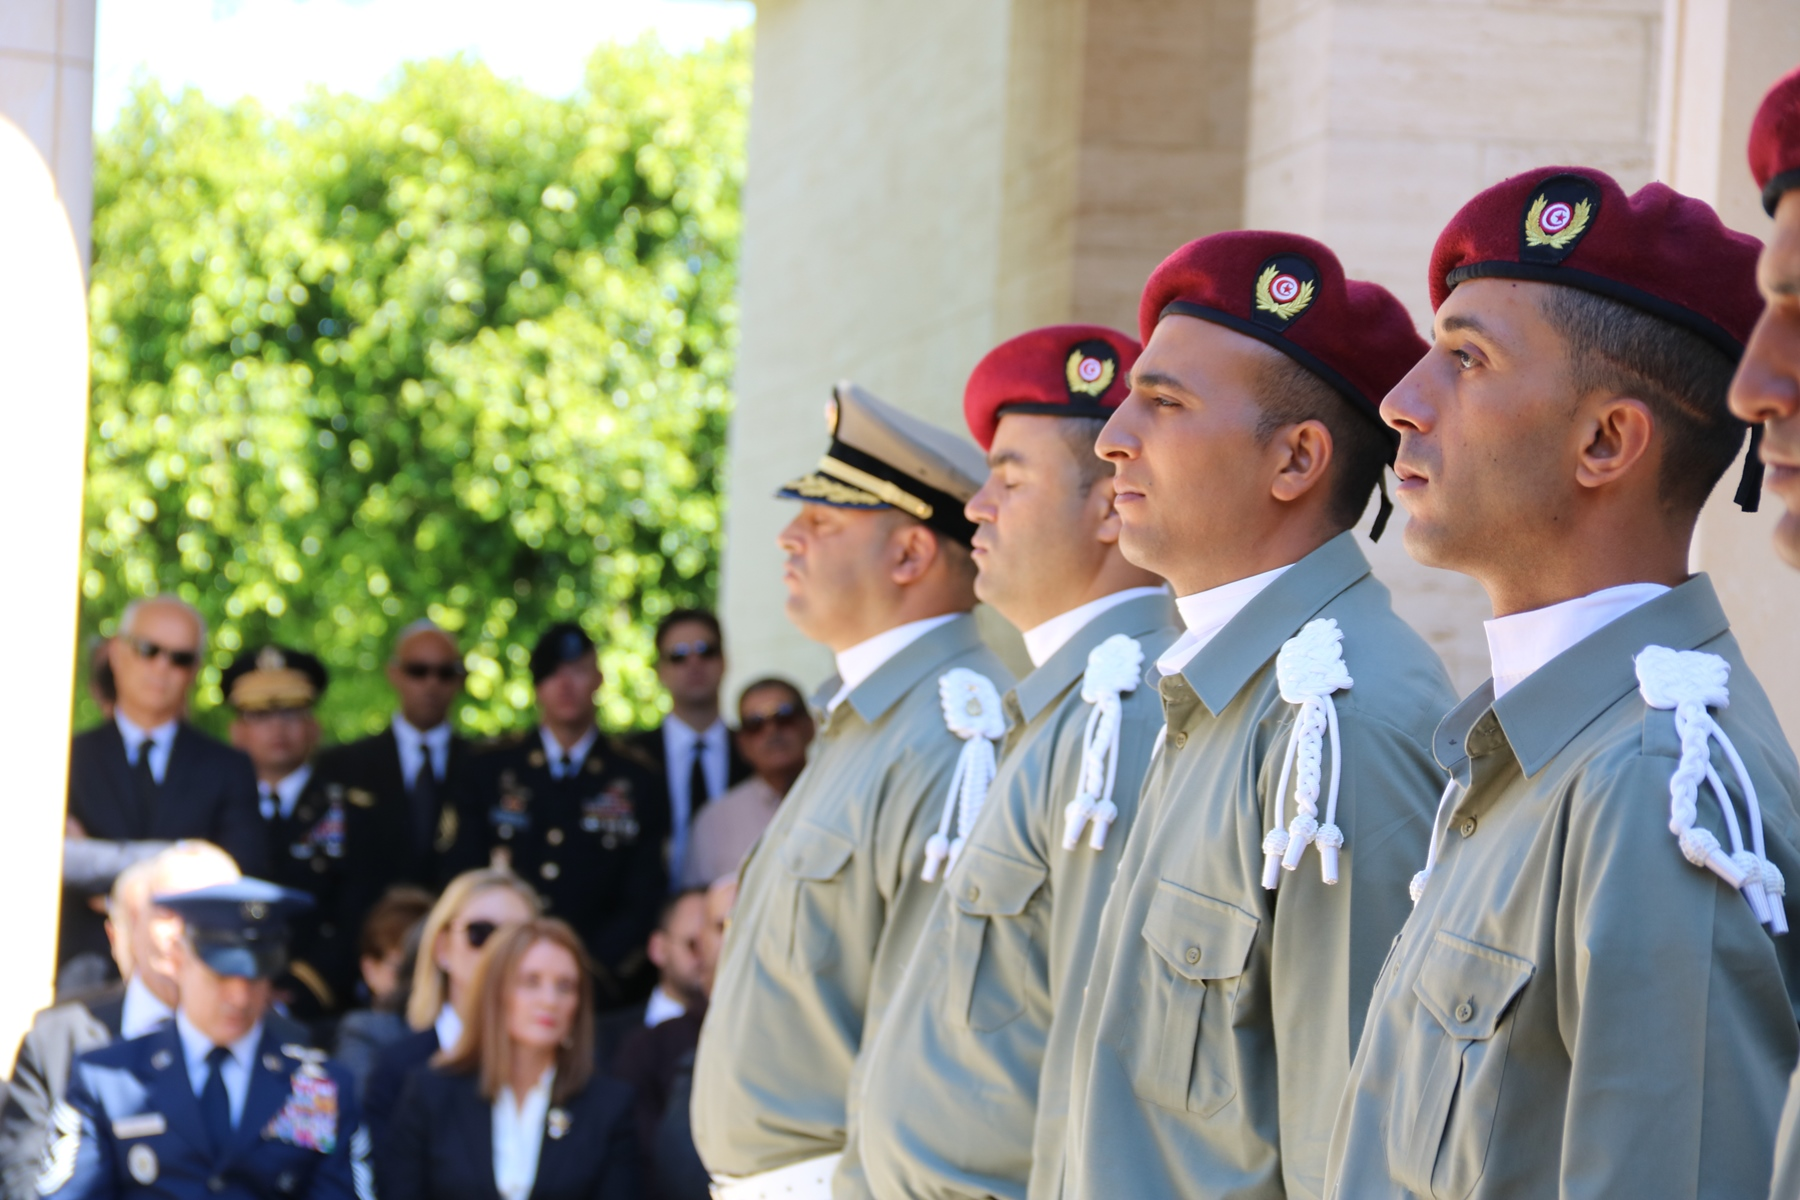 Members of a Tunisian Honor Guard participate in the Memorial Day Ceremony at the North Africa American Cemetery and Memorial in Carthage, Tunisia May 29, 2017. (U.S. Embassy Tunis photo by Zouhair Sfaxi/Released)